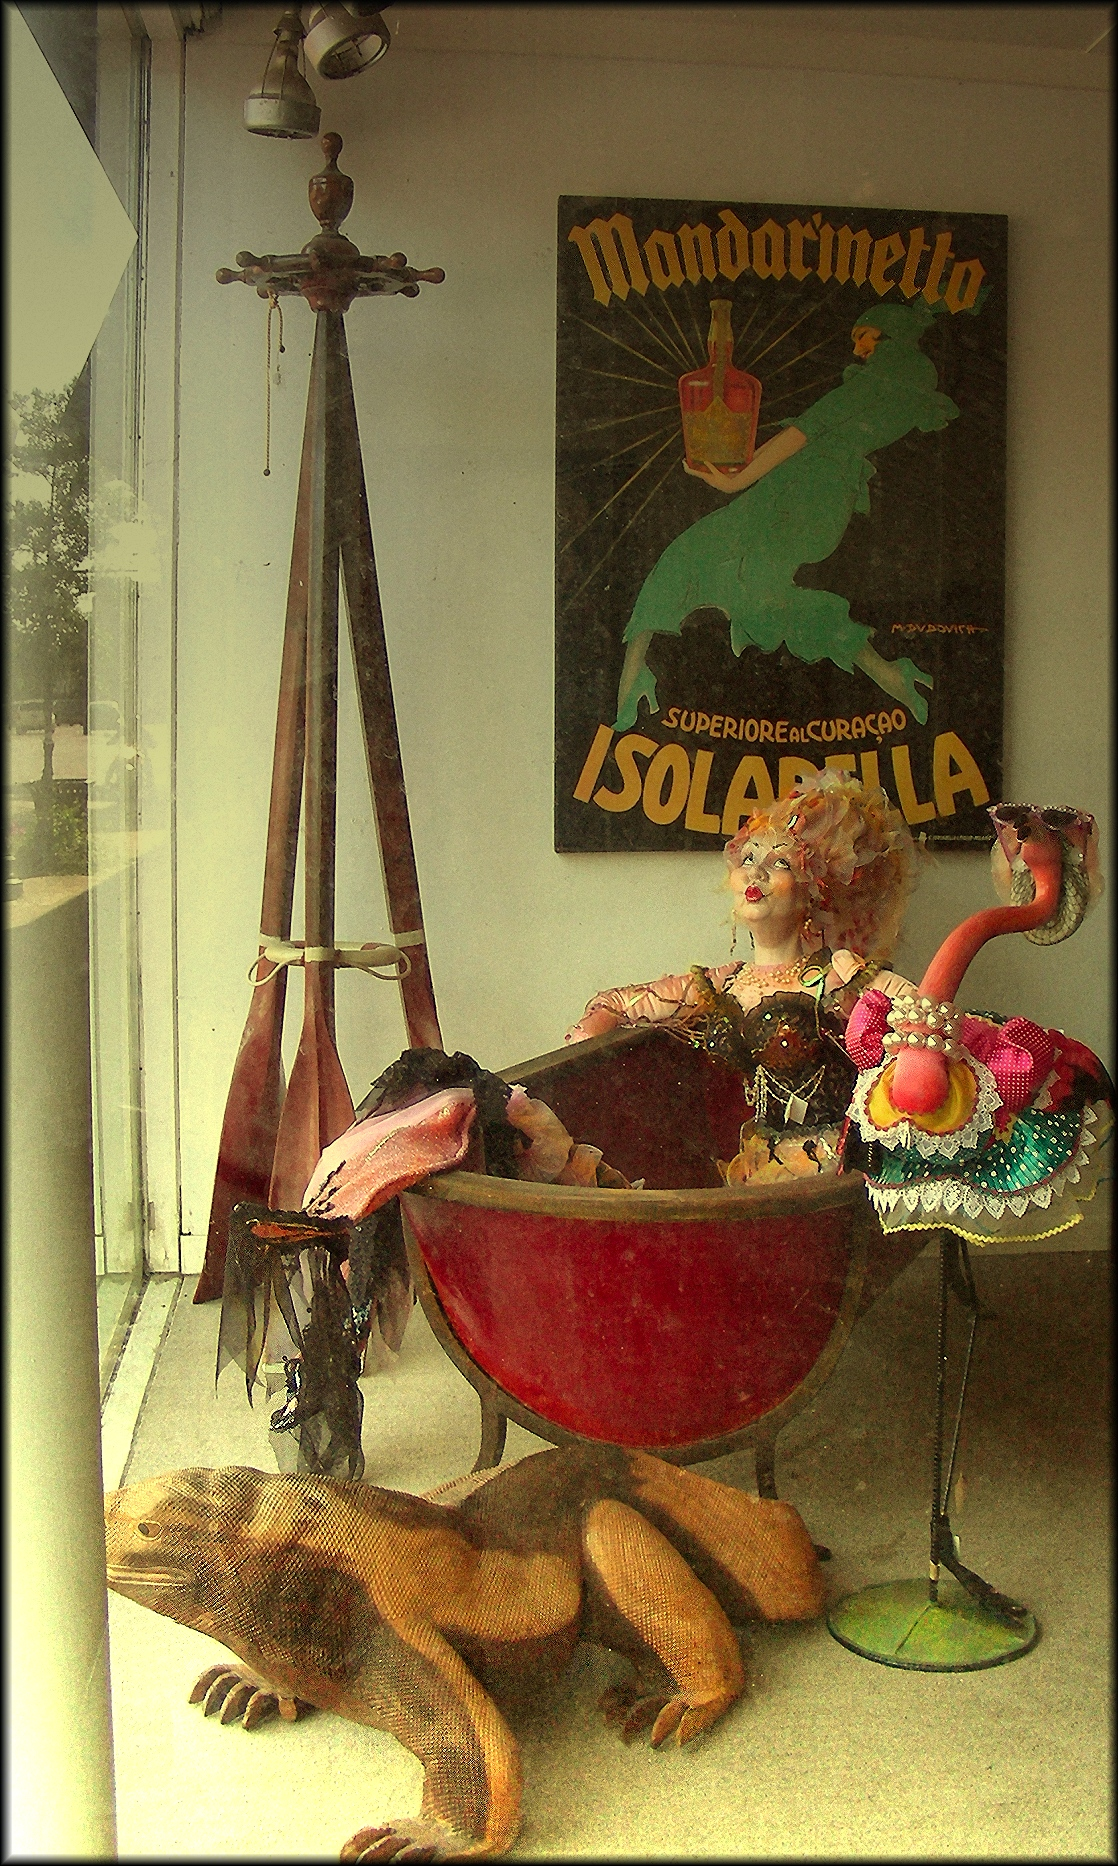 Dazzled Mannequin and Bespectacled Flamingo in Downtown Historic Nacogdoches